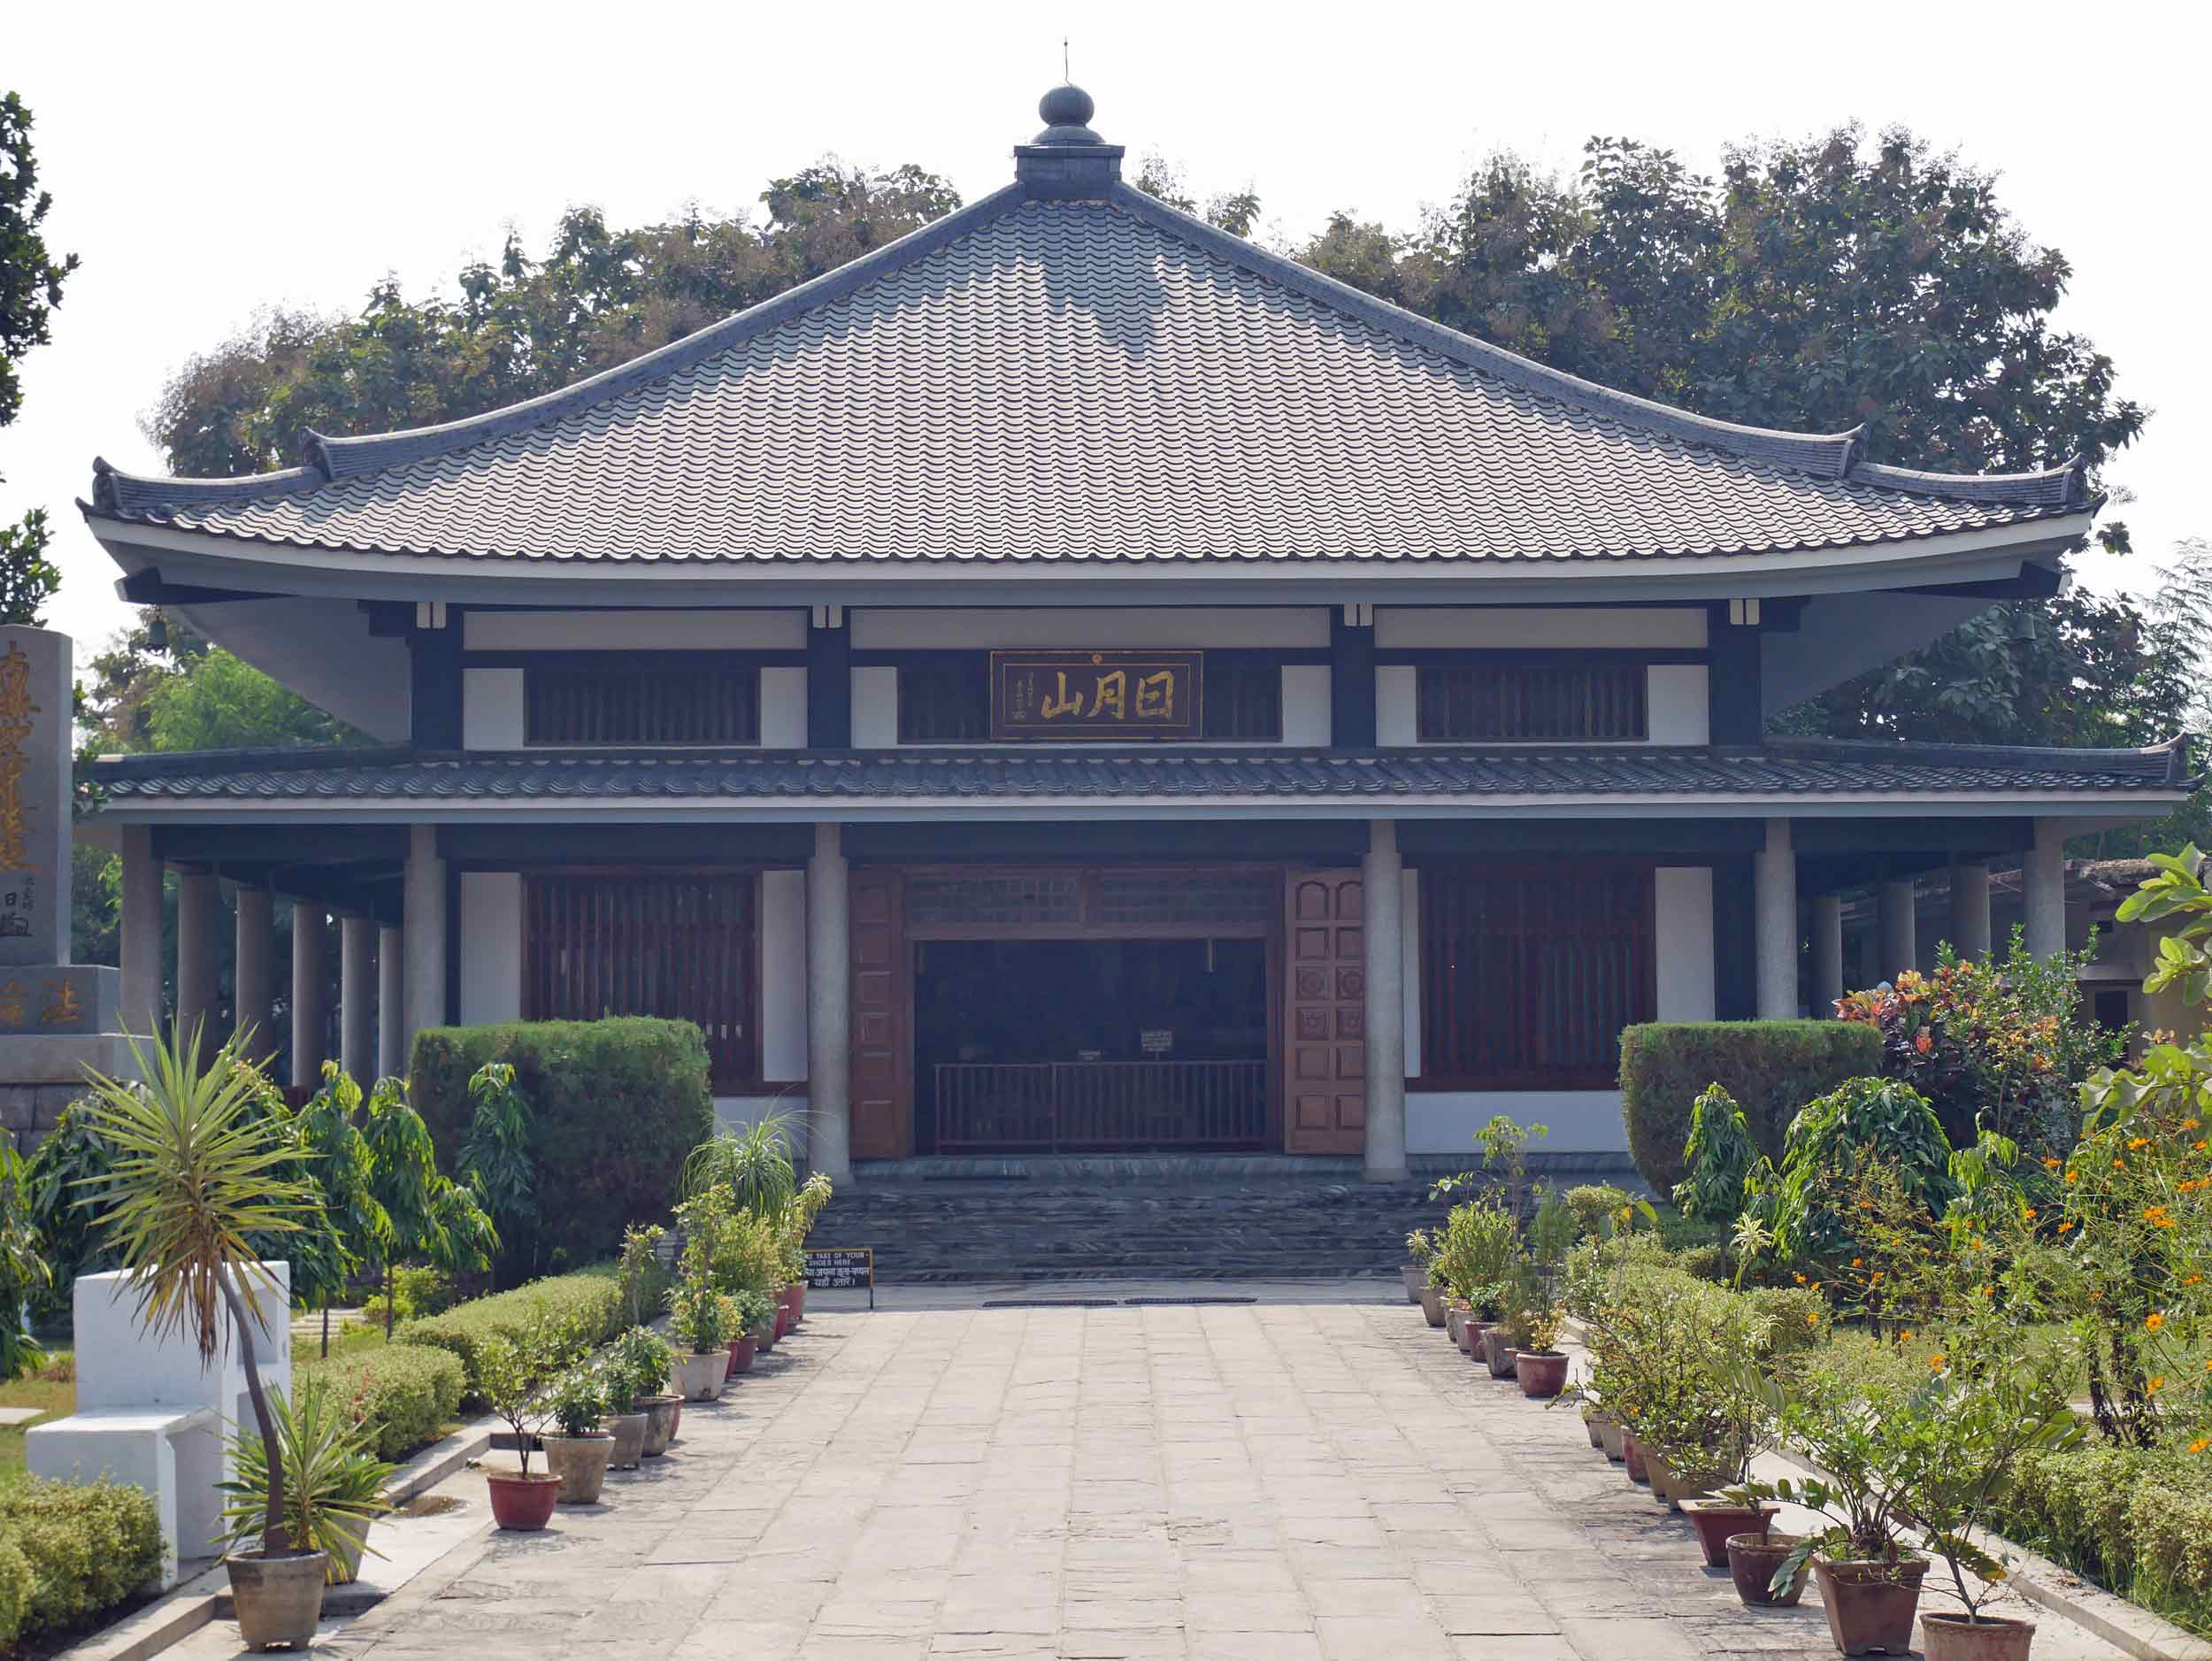 The Japanese temple in Sarnath brought us right back to  our time amongst the country's Zen temples  this past June.